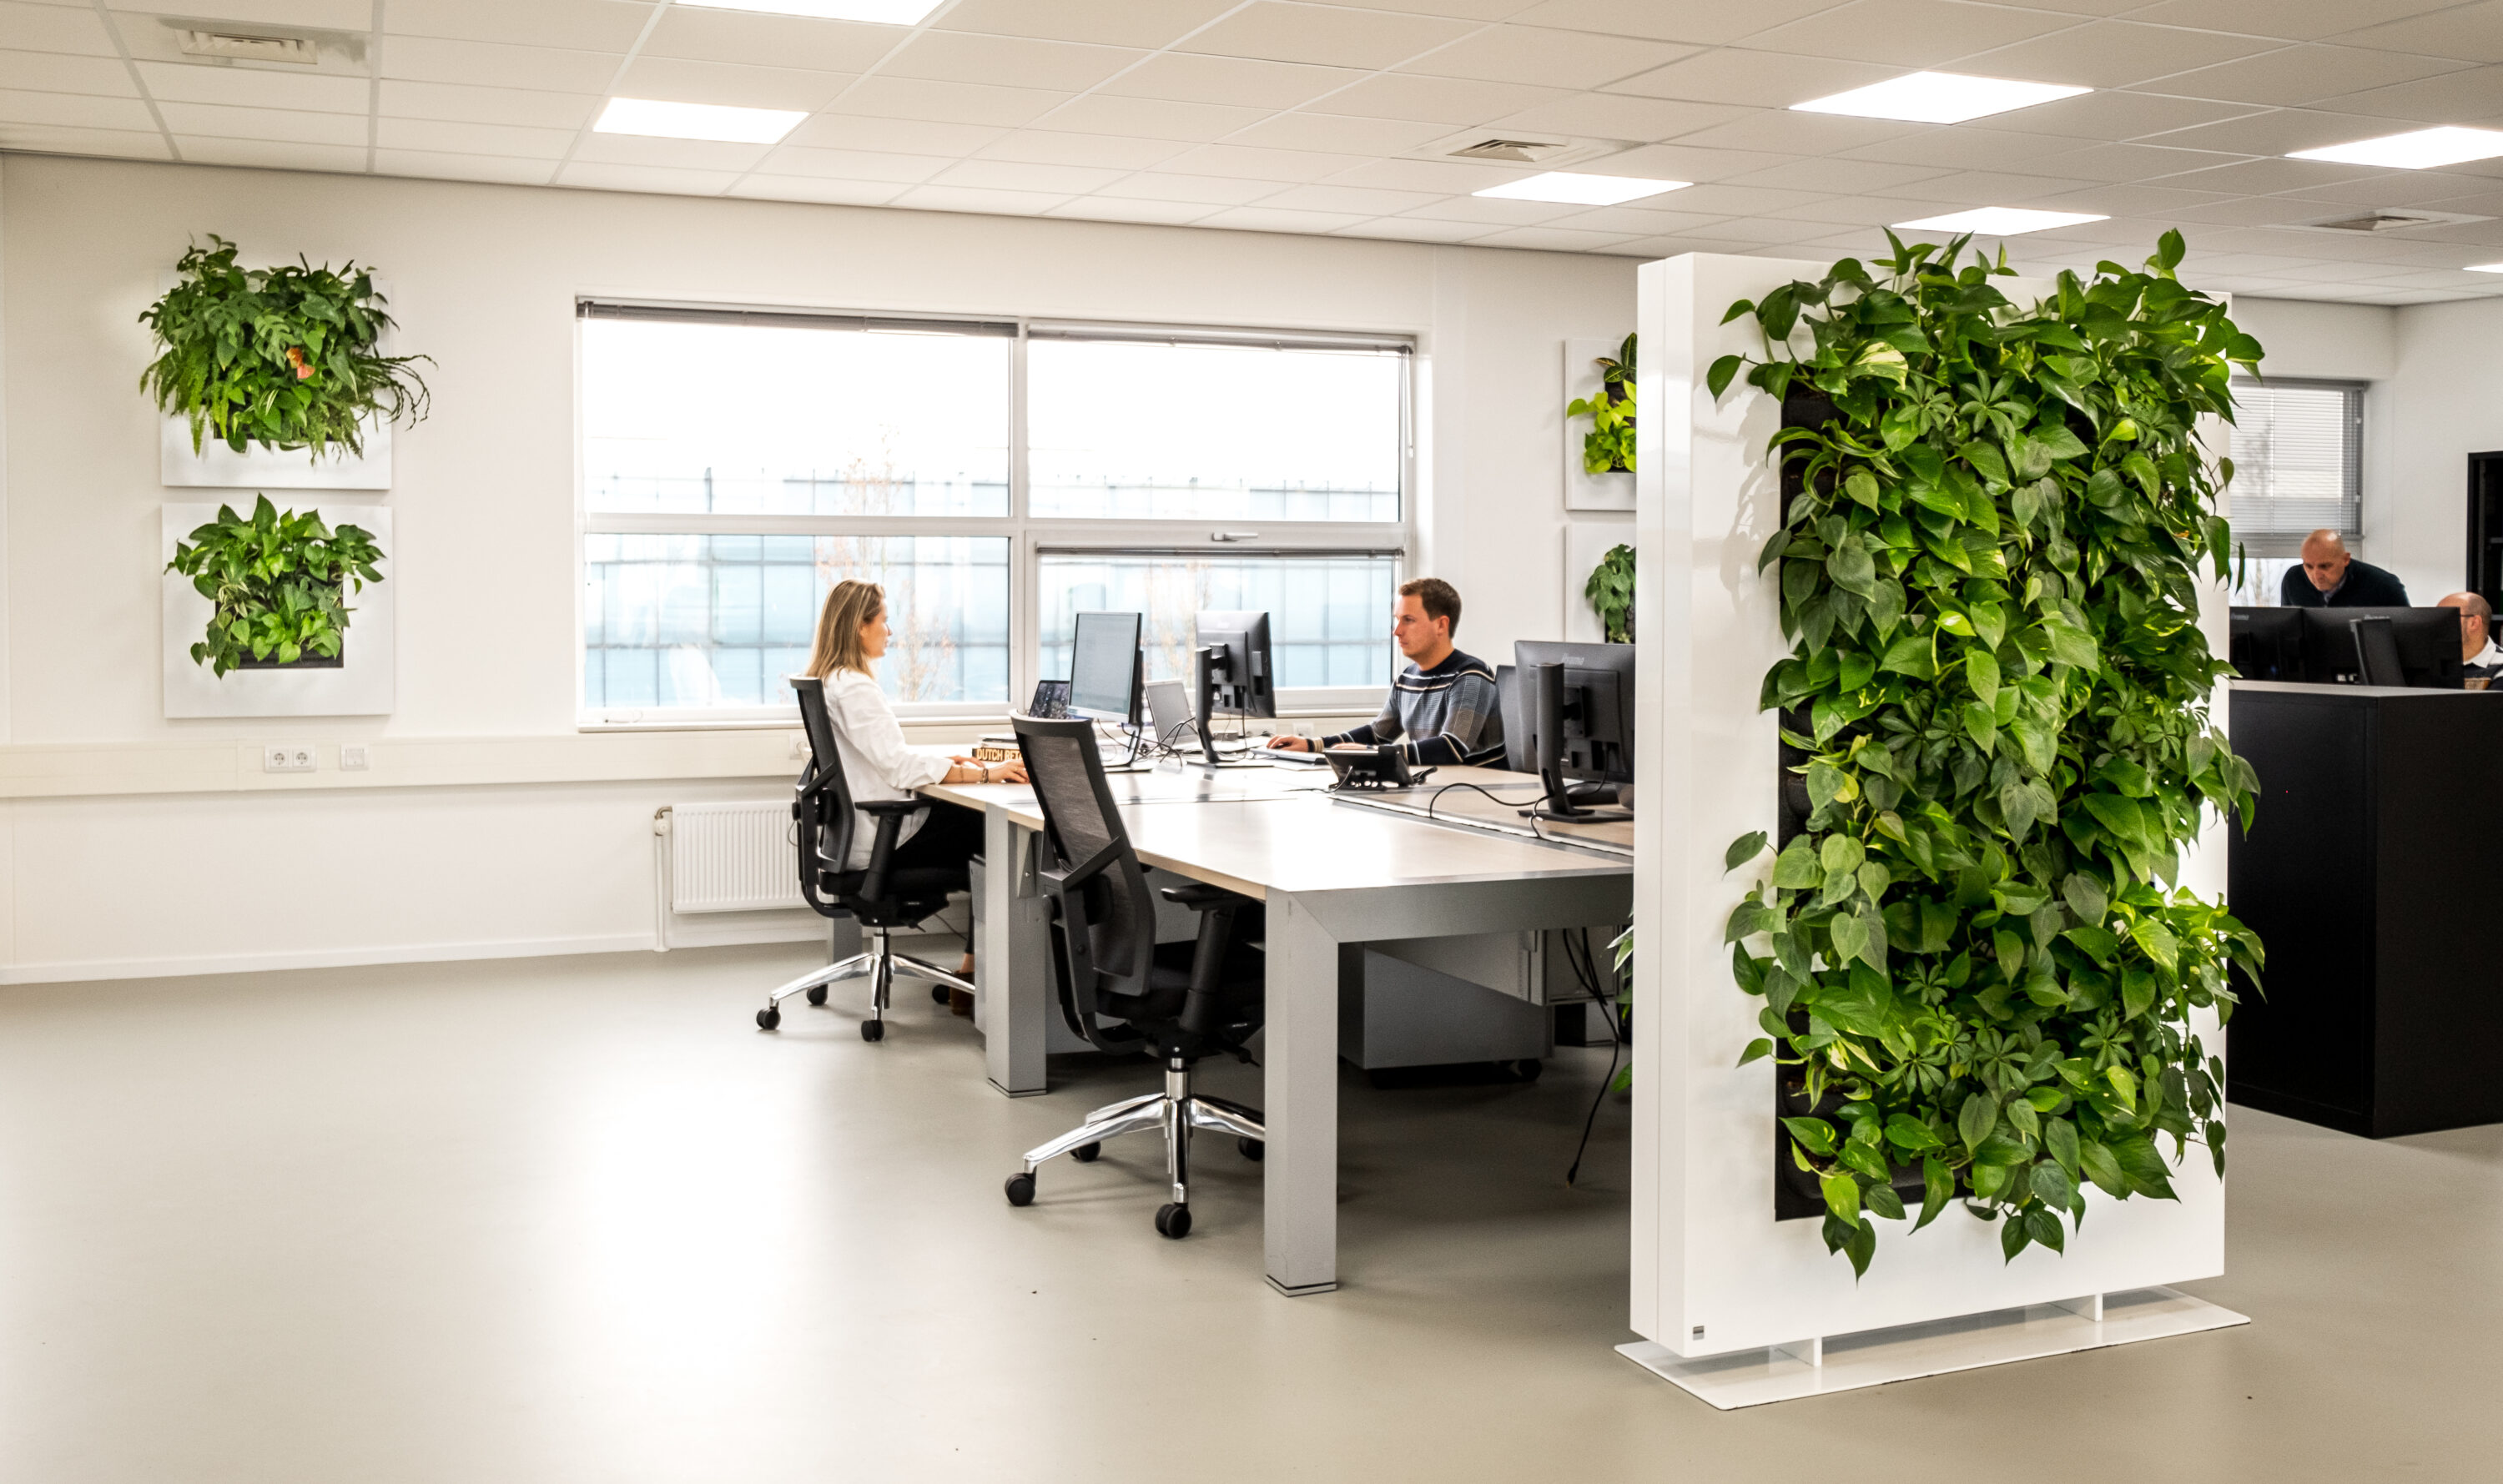 Mobilane LivePanel 6 benefits of plants in the office